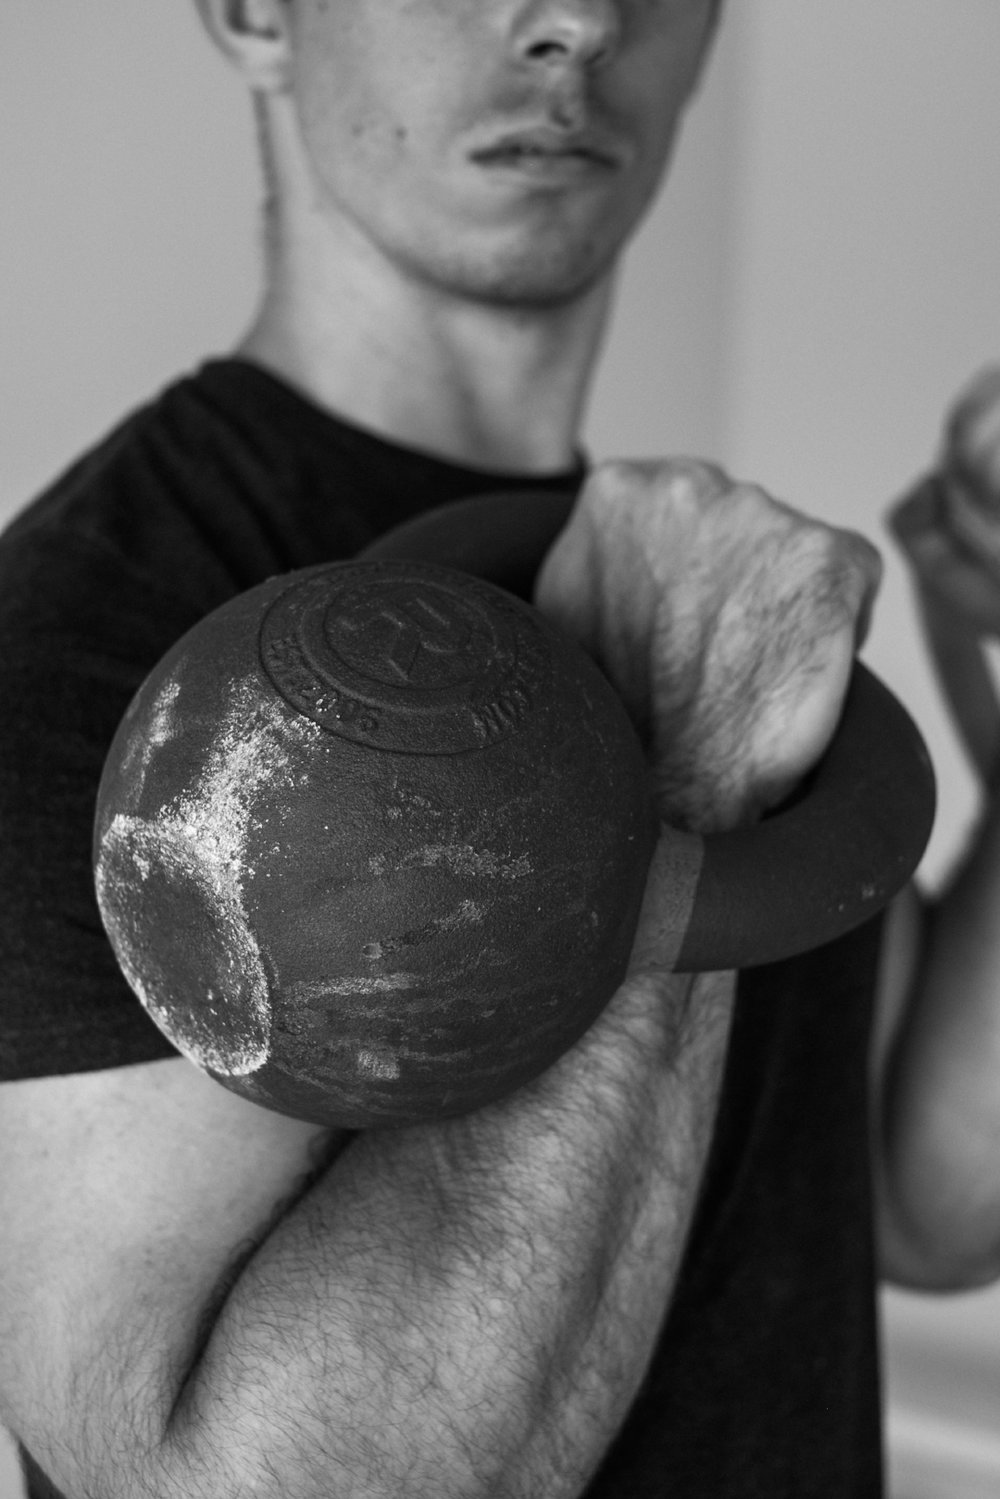 The Virtue 6 Week Kettlebell Program Includes - Simple workouts that are short, effective and easy to understandBalanced nutrition plan that makes eating healthy convenient and enjoyable. No rabbit food here gentlemen.Consistent, reliable results given you put forth the effort to follow the workouts and eat the foods.Expert instruction that ensures maximum effectiveness and safetyThe ability to workout anytime anywhere based on your schedule.